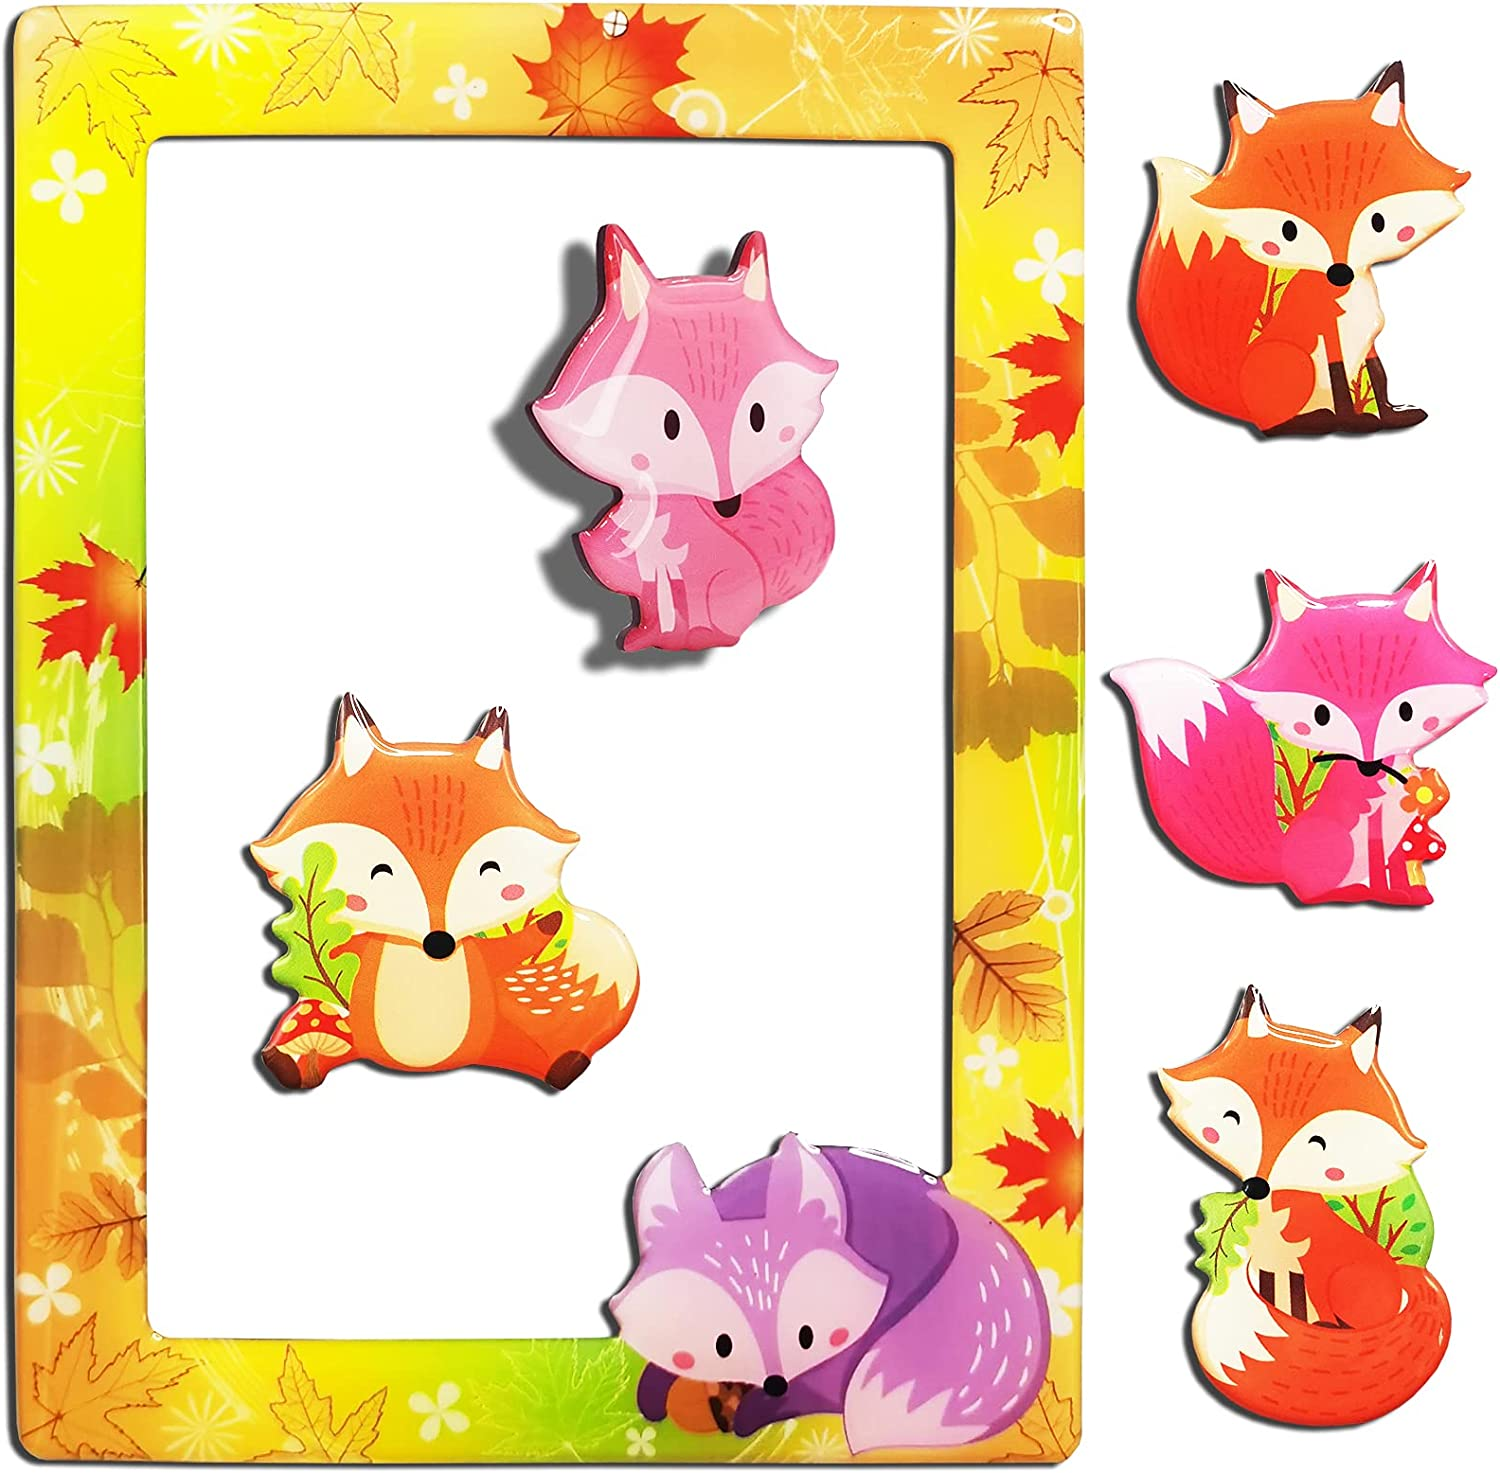 Magnetic Picture Frame store - Colorful 4x6 Save money Pcs Photo with 5 Fox